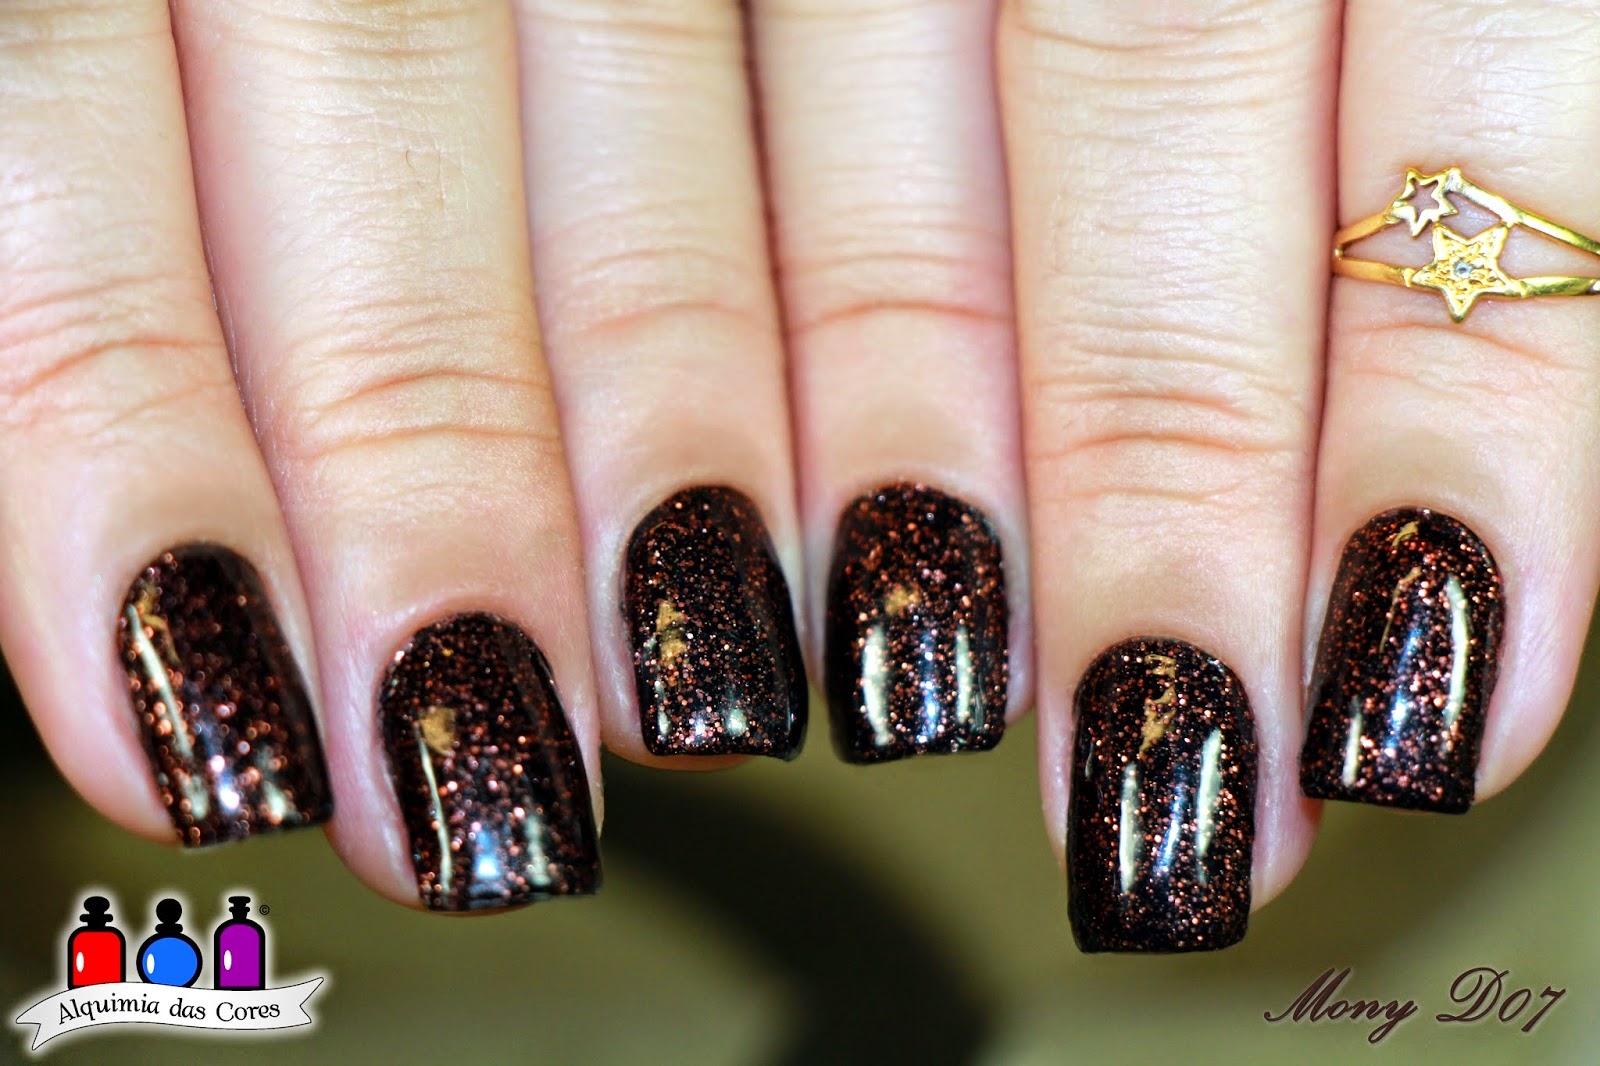 China Glaze, Getting to Gnaw You, Halloween 2014, Apocalypse Color, Mony D07, MonyD07, Simoned07, Simone D07, Marrom, Cremoglitter, Glitter, cobre,